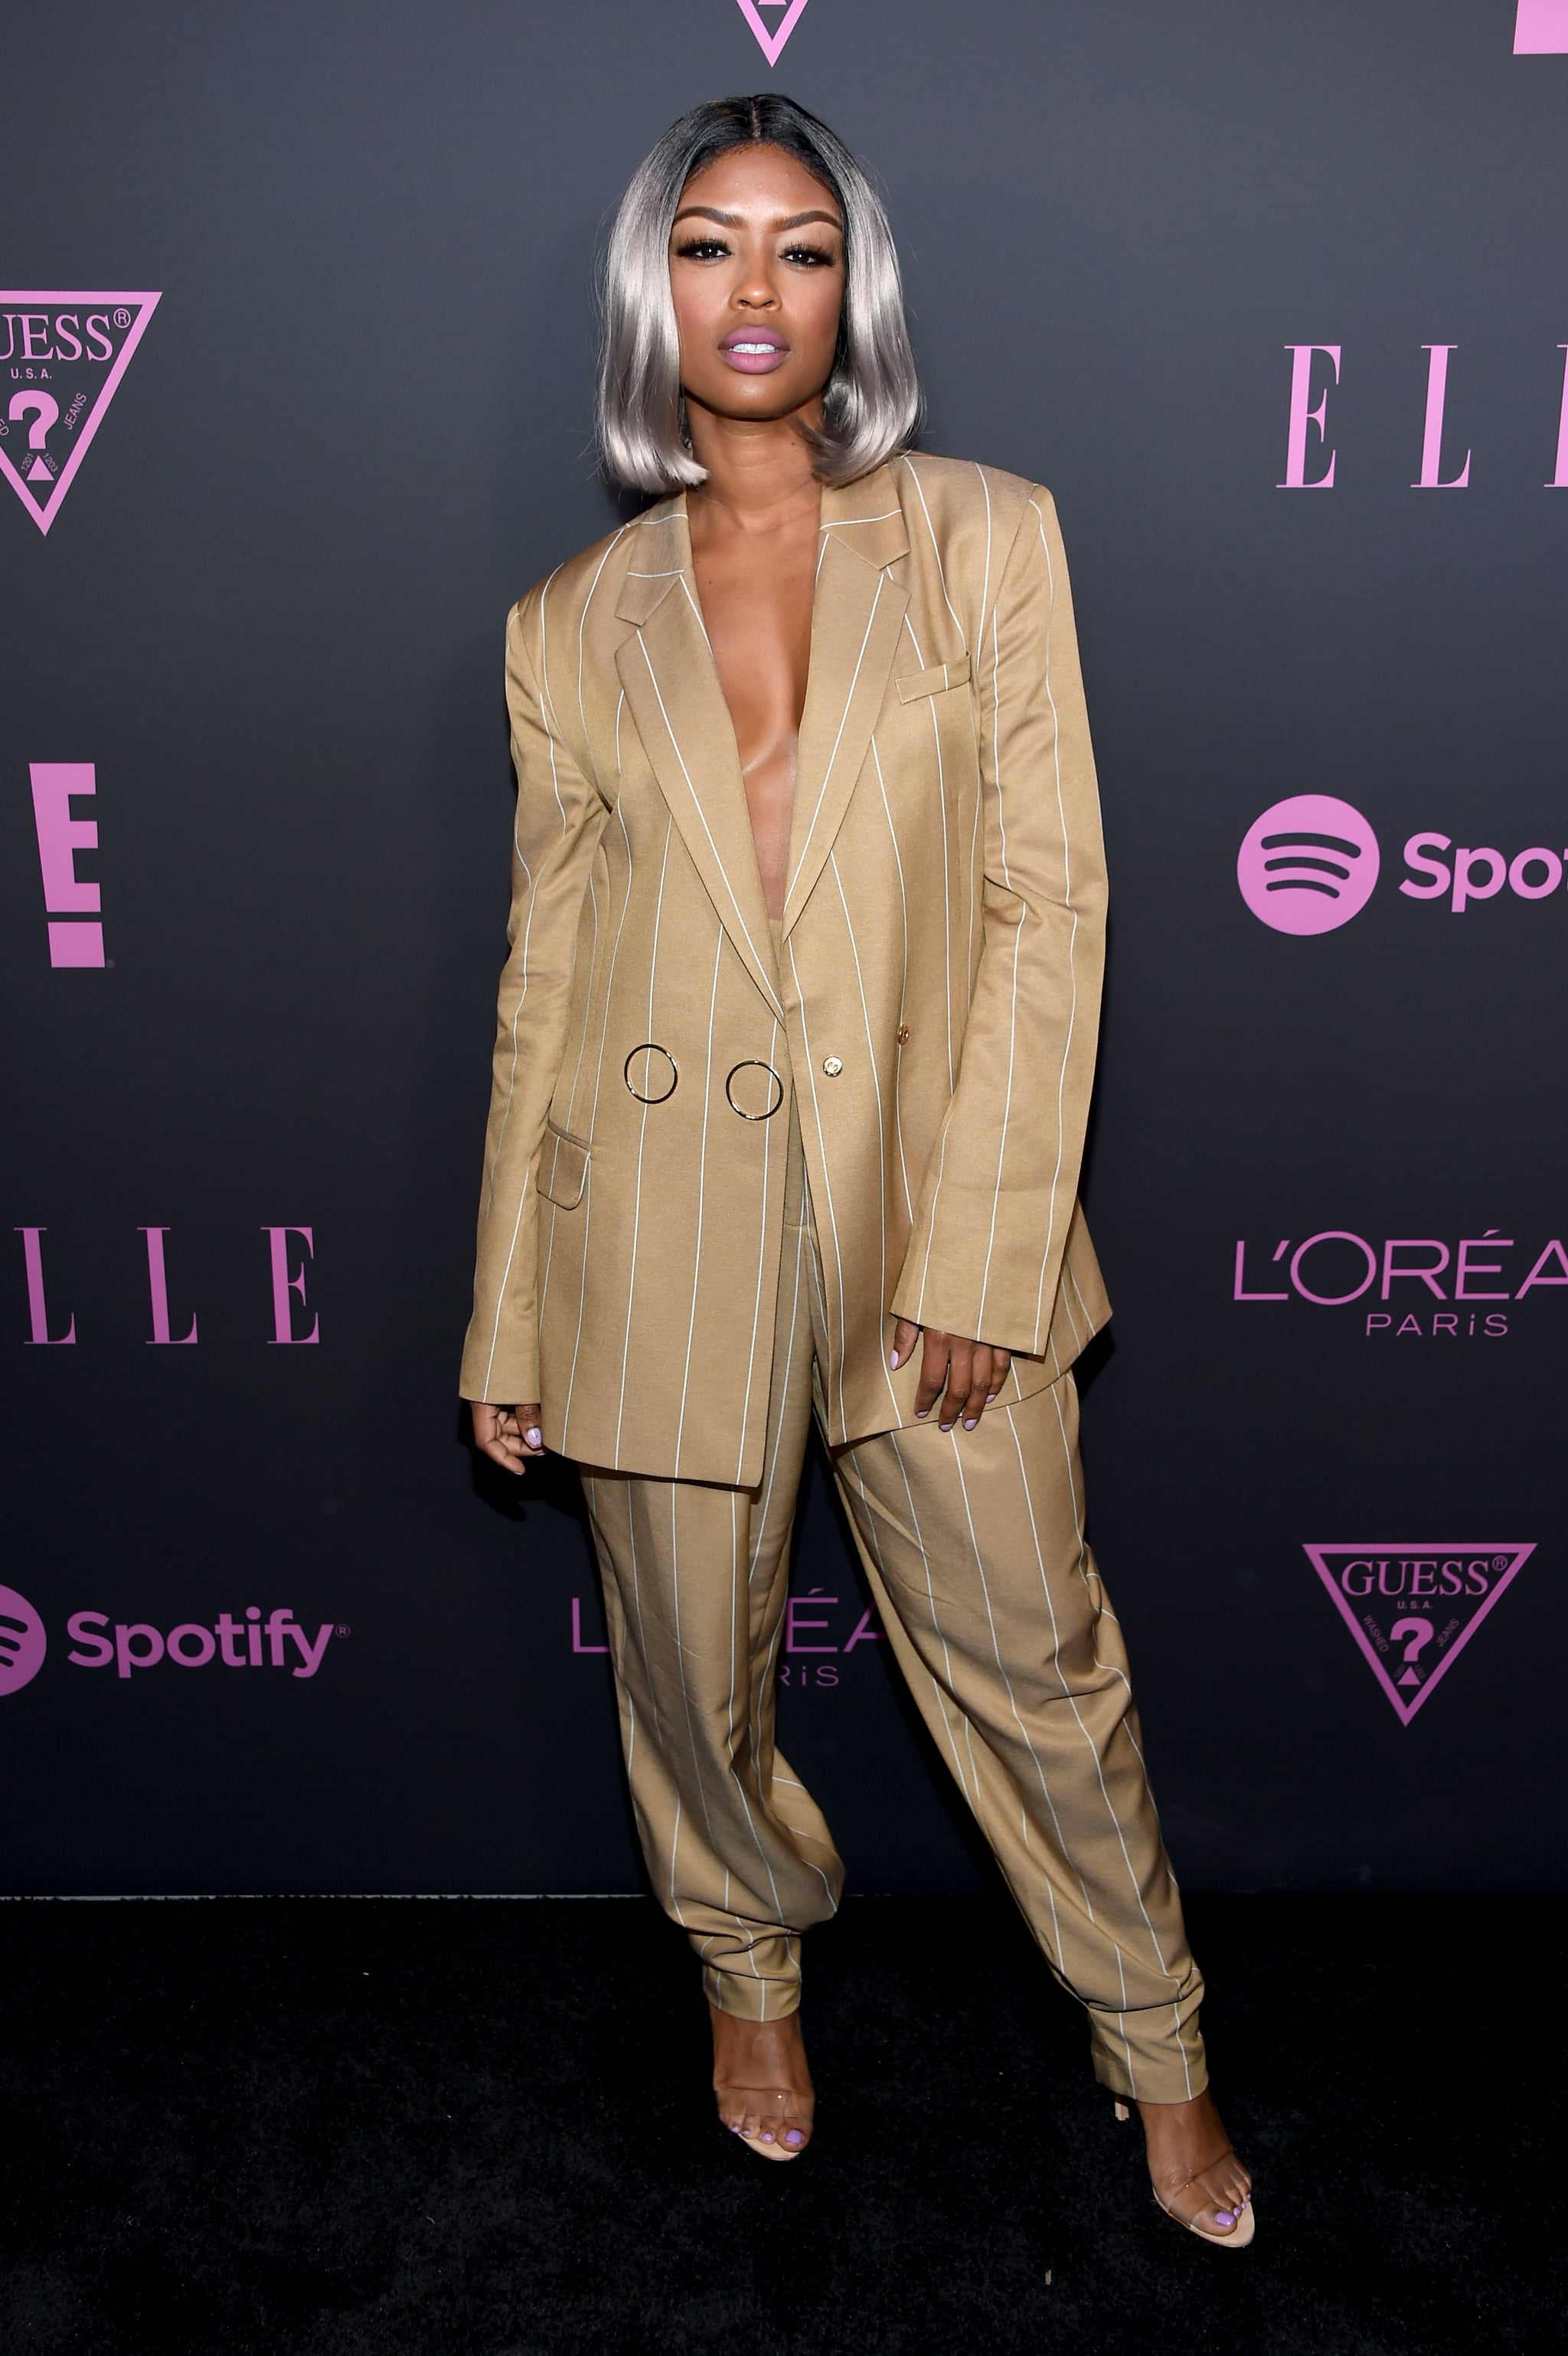 NEW YORK, NEW YORK - SEPTEMBER 05: Javicia Leslie attends ELLE, Women in Music presented by Spotify and hosted by Nina Garcia, Jameela Jamil & E! Entertainment on September 05, 2019 in New York City. (Photo by Dimitrios Kambouris/Getty Images for ELLE)